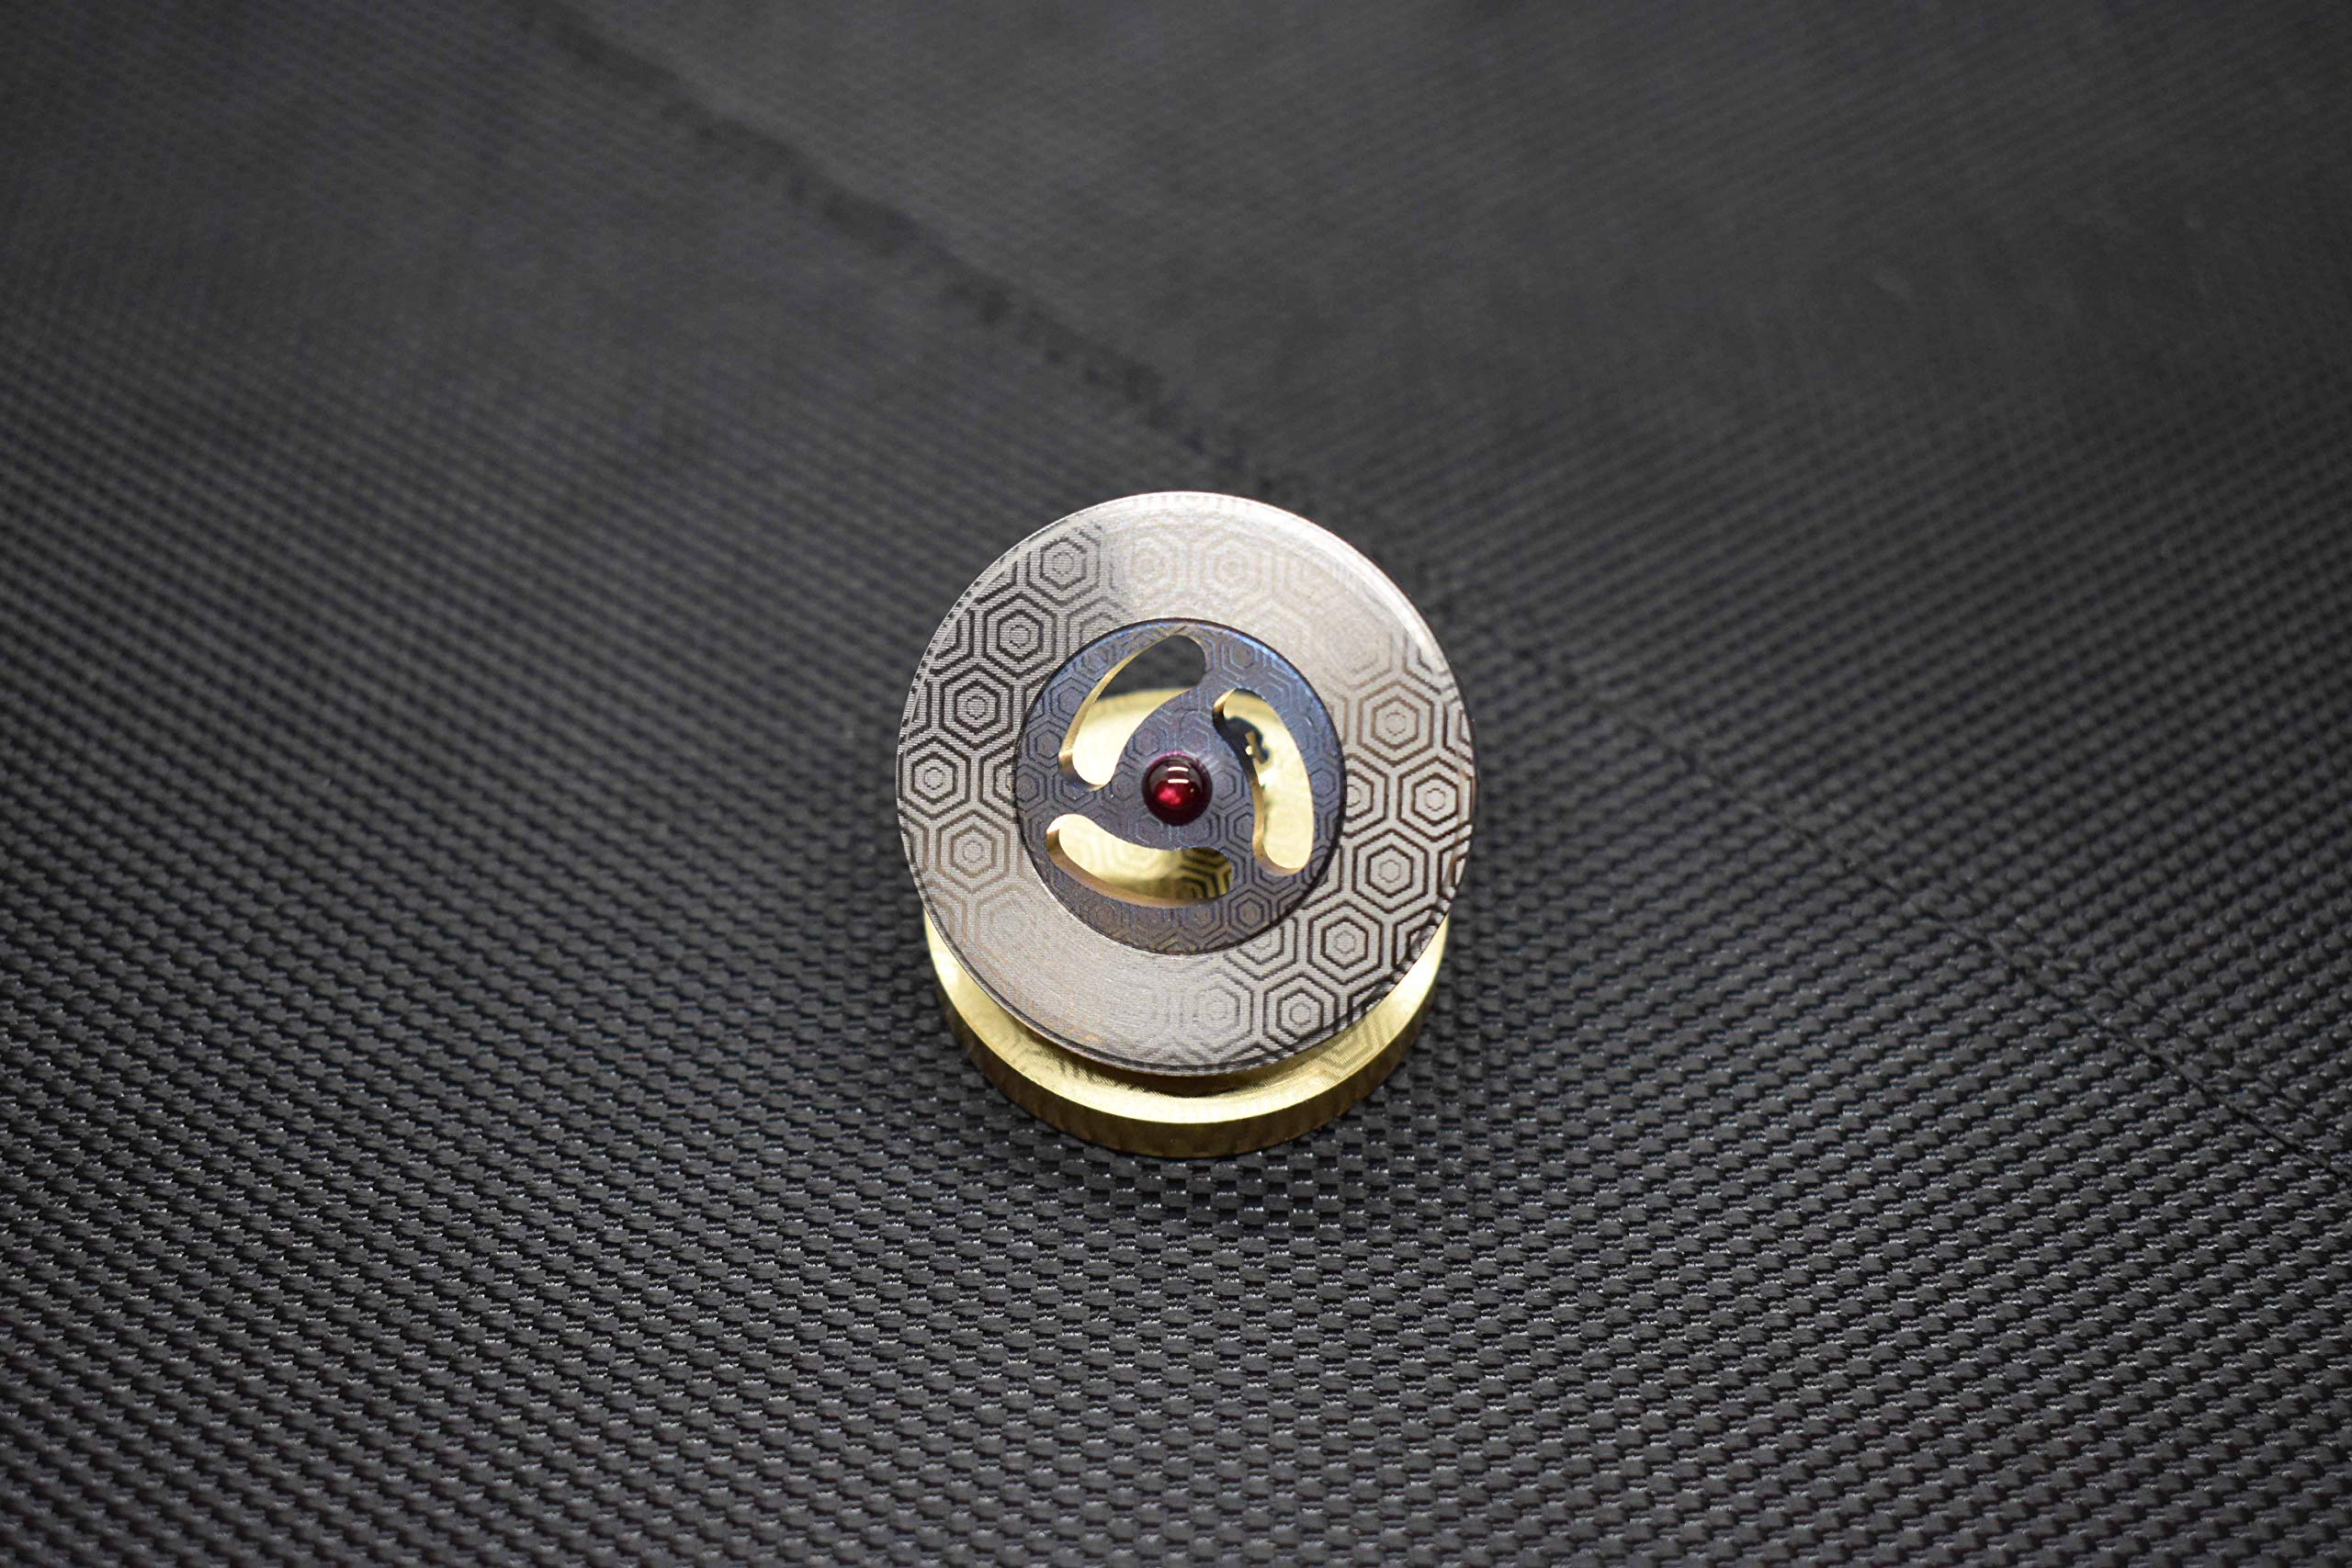 MetonBoss Spinning Tops - Tungsten Rotor / Precision Milled Titanium Core with Ruby Bearing | Everyday Carry Birthday Gift Ideas | Collectable Fidget (Performer MEGA) by MetonBoss (Image #4)